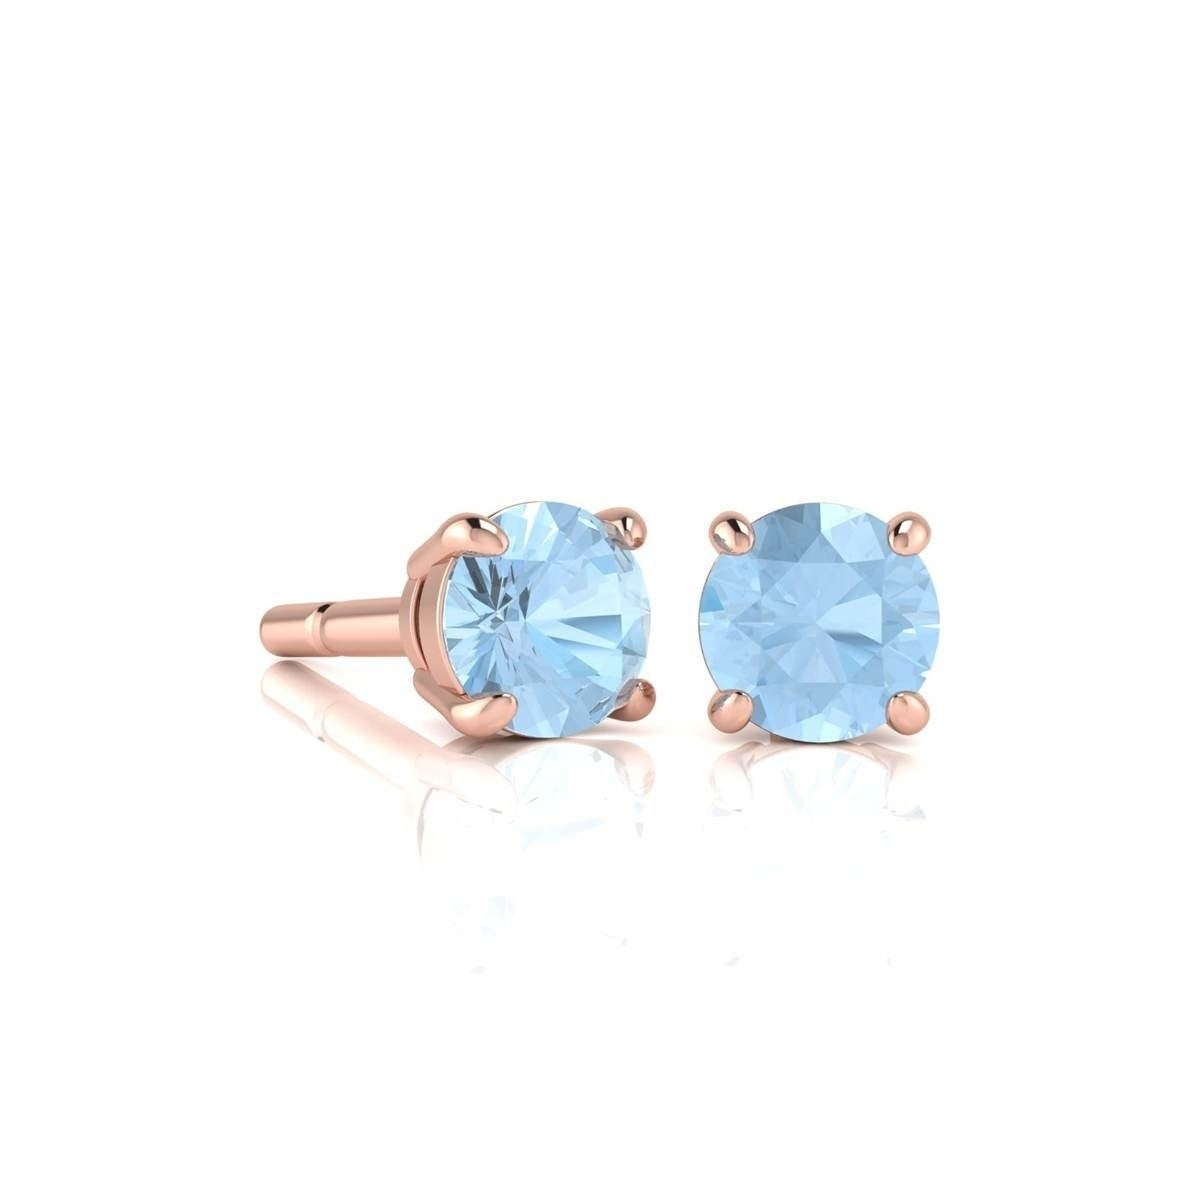 zircornia aqua colors sizes march gold accent stud screwback white solitaire double round cubic cut earrings stone birth other marine prong yellow set